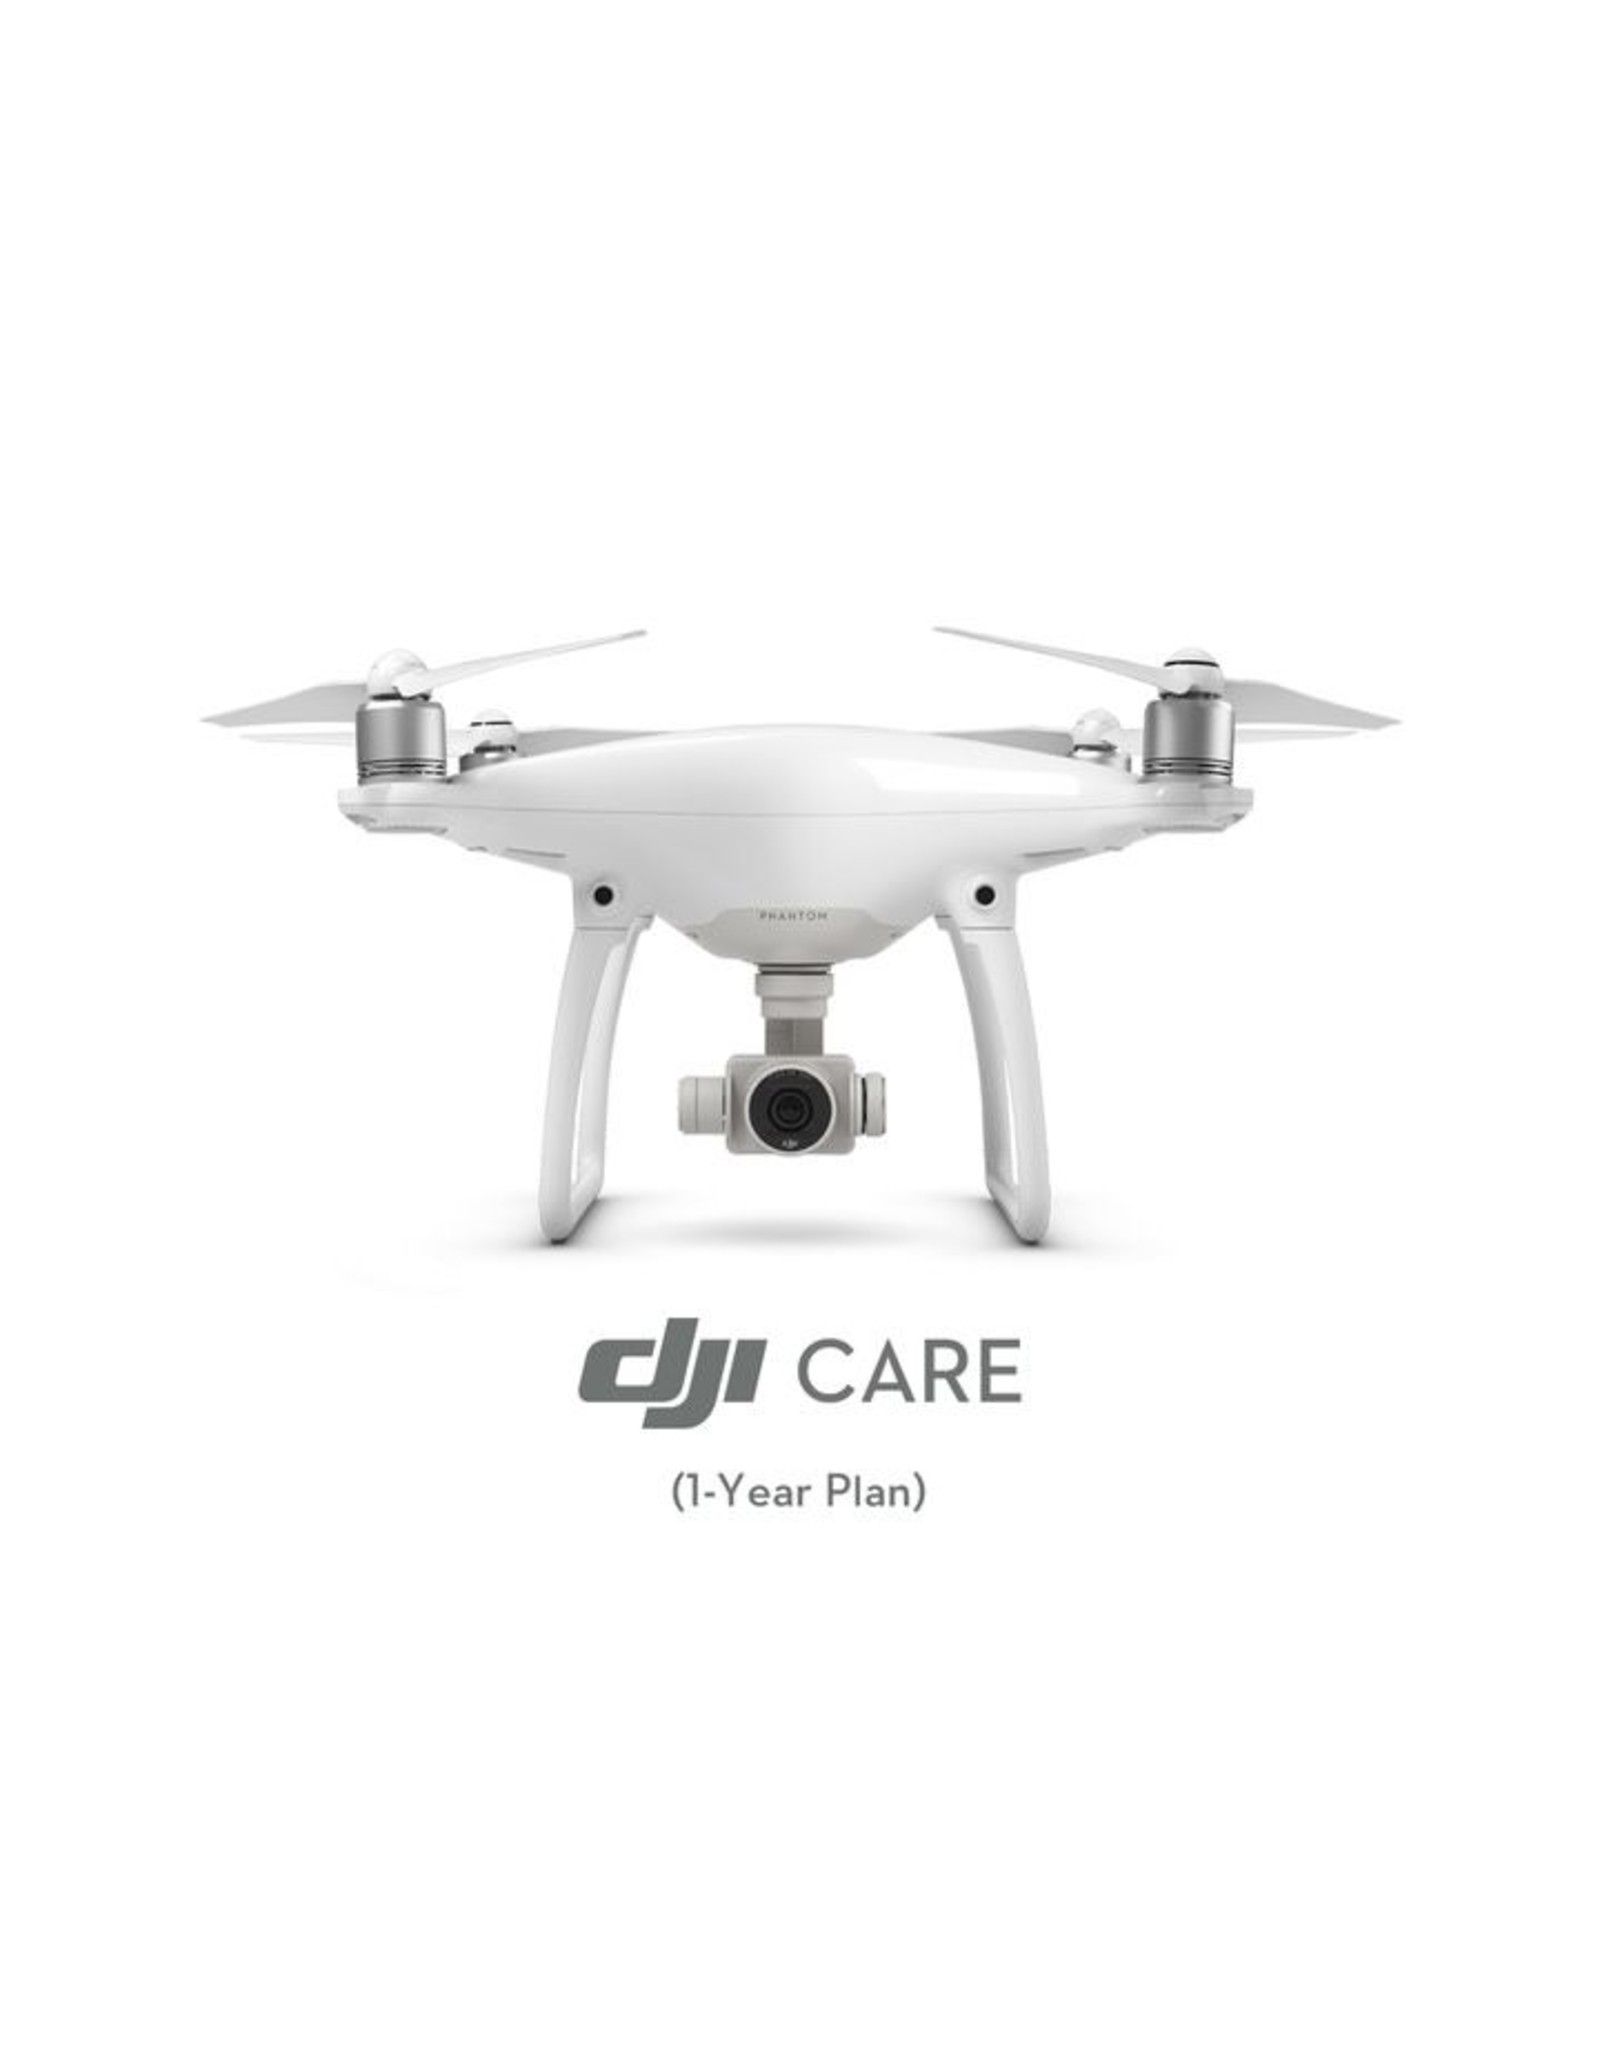 DJI DJI Care for Phantom 4 (1-Year)